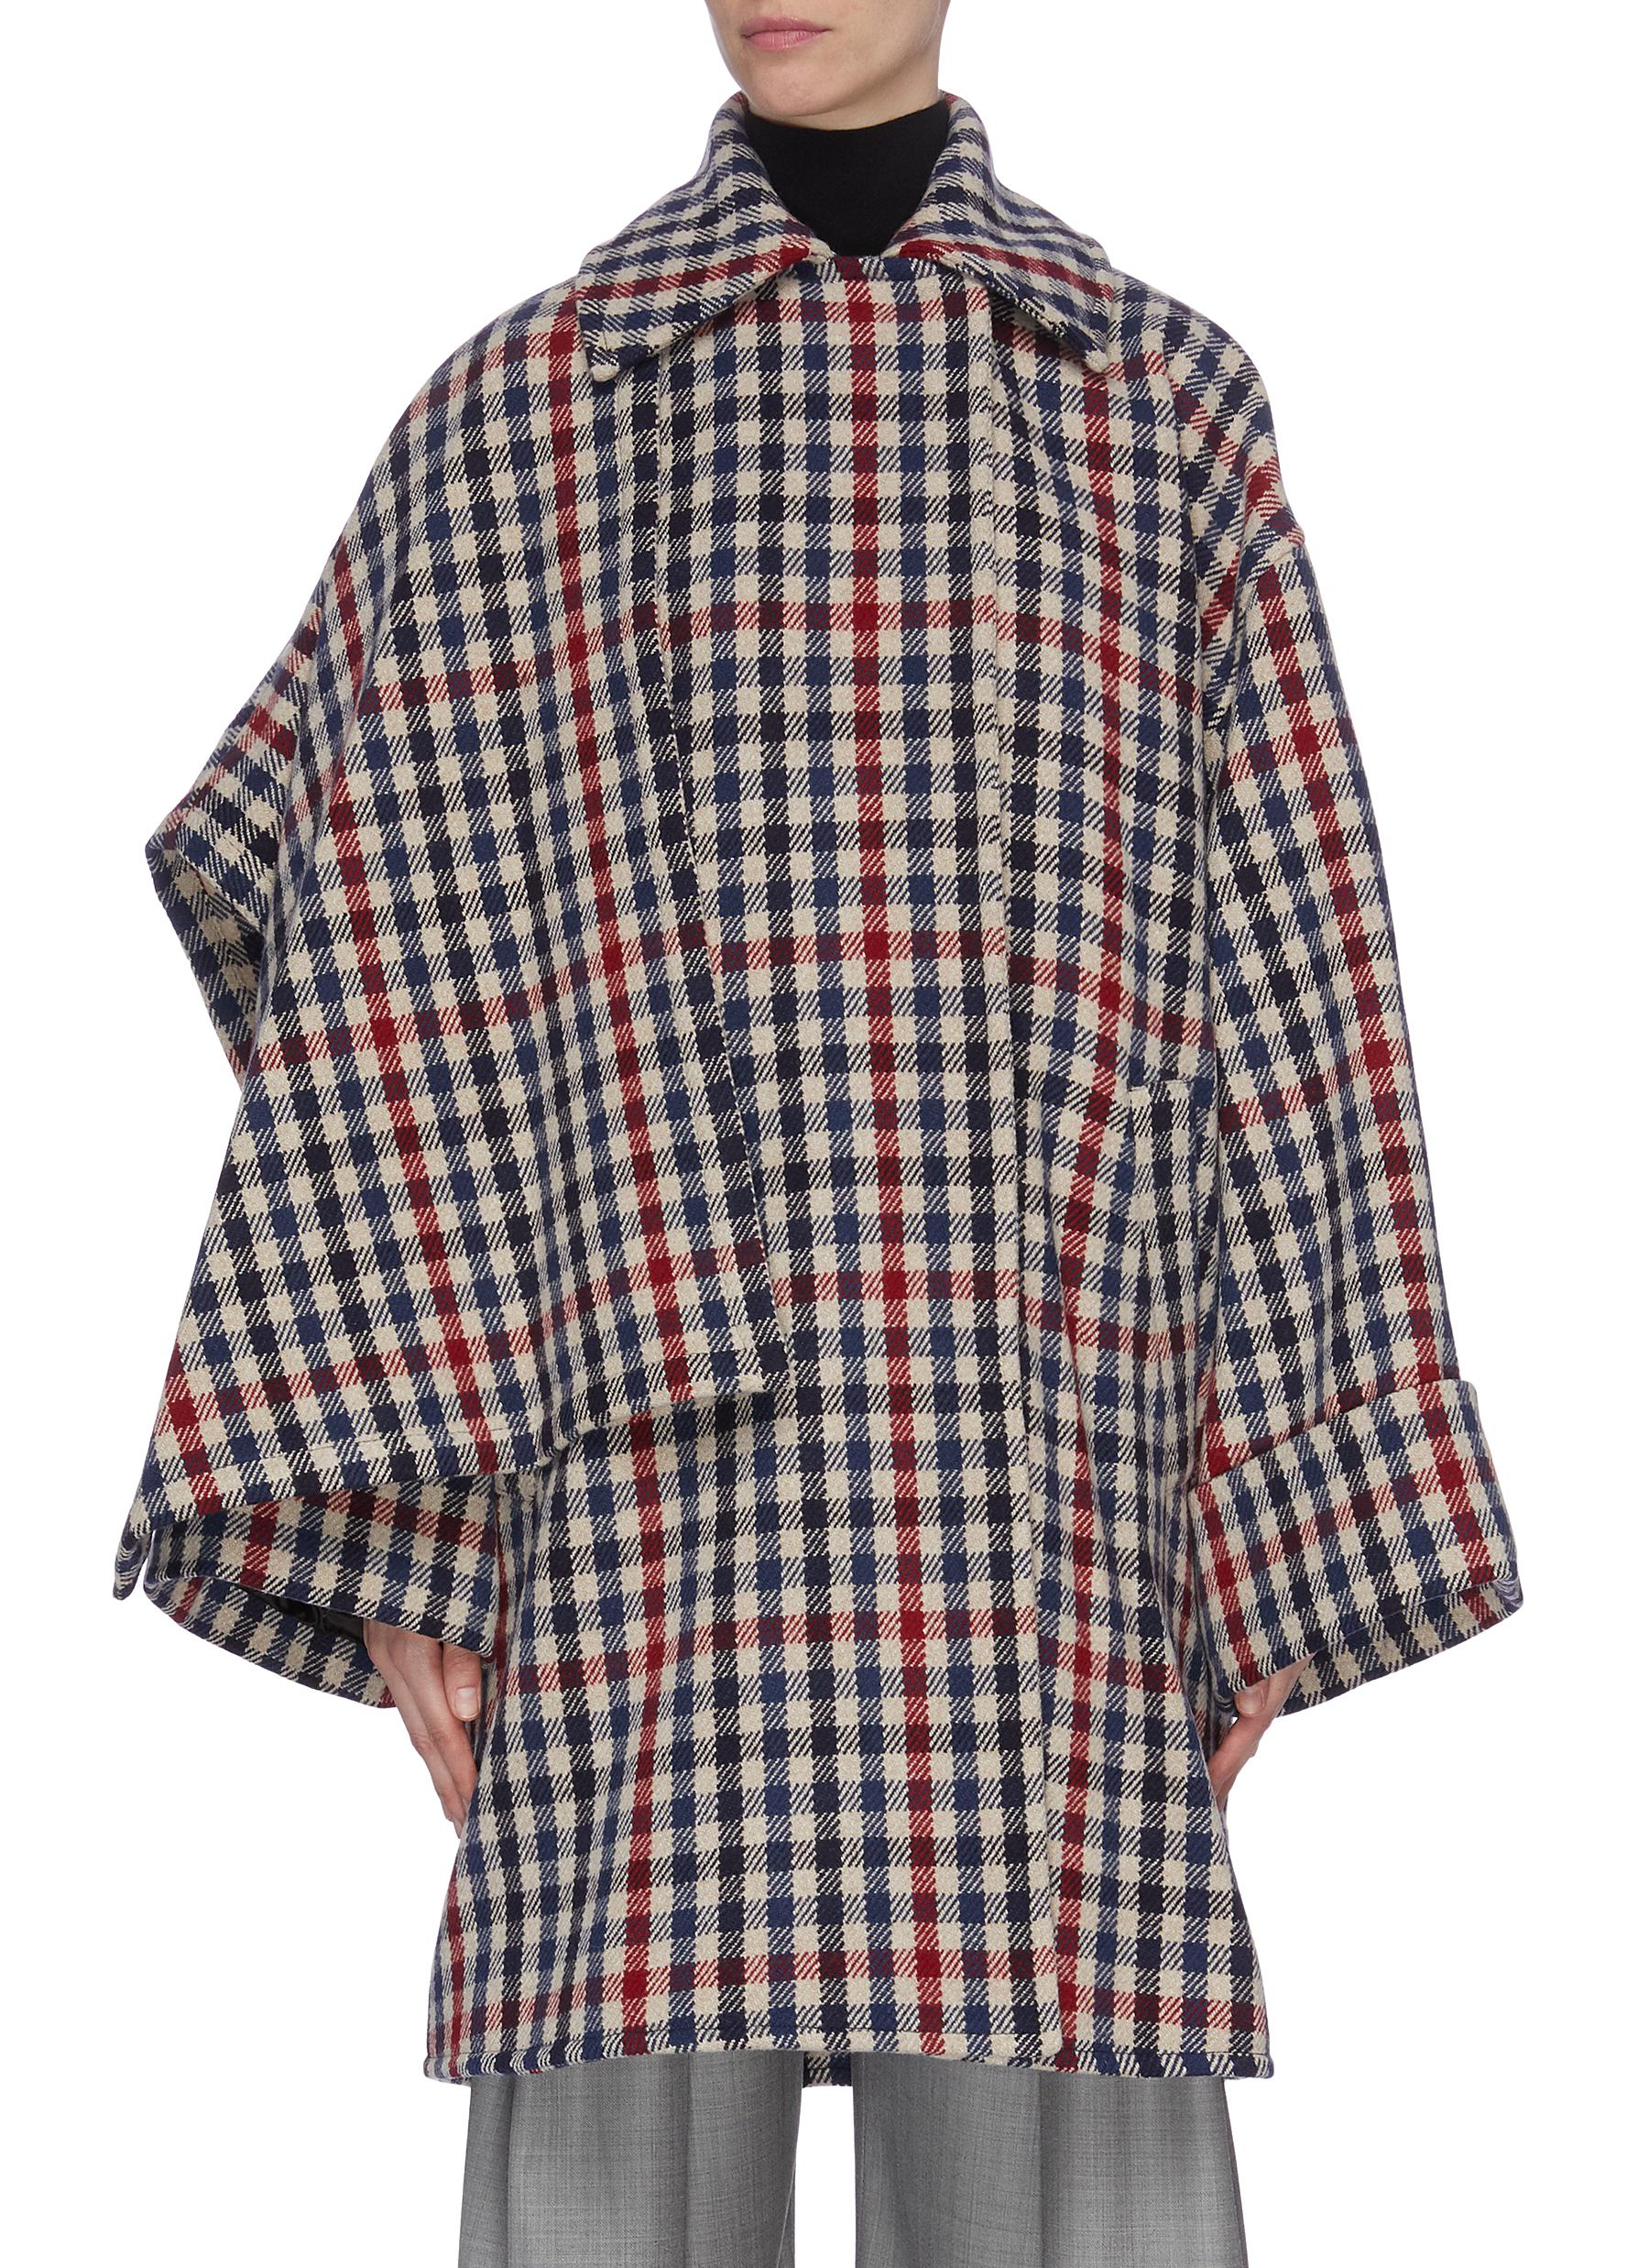 Asymmetric gingham check coat by Jw Anderson